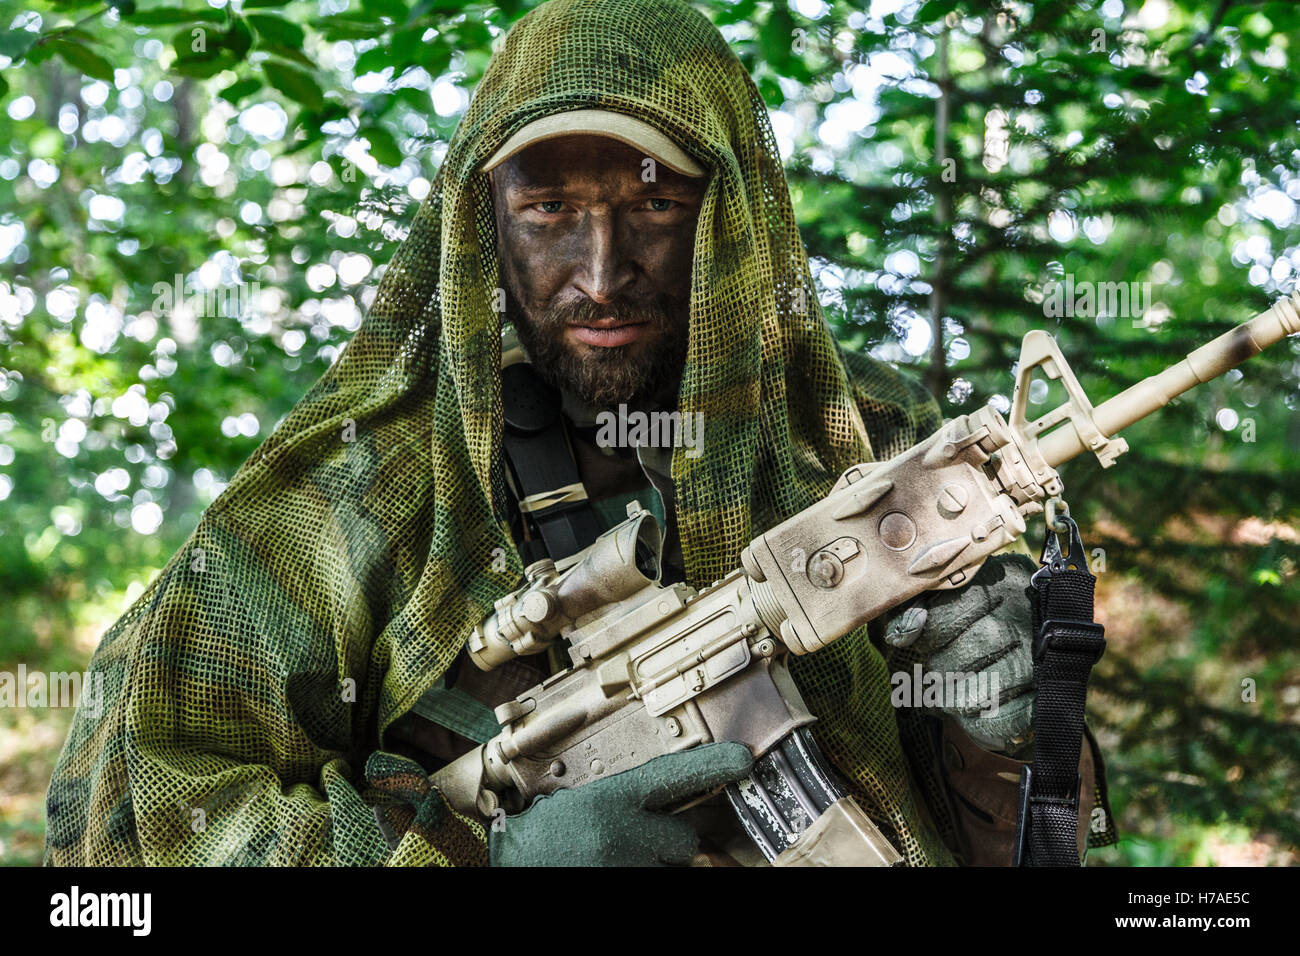 Delta Force Soldier Stock Photos & Delta Force Soldier Stock